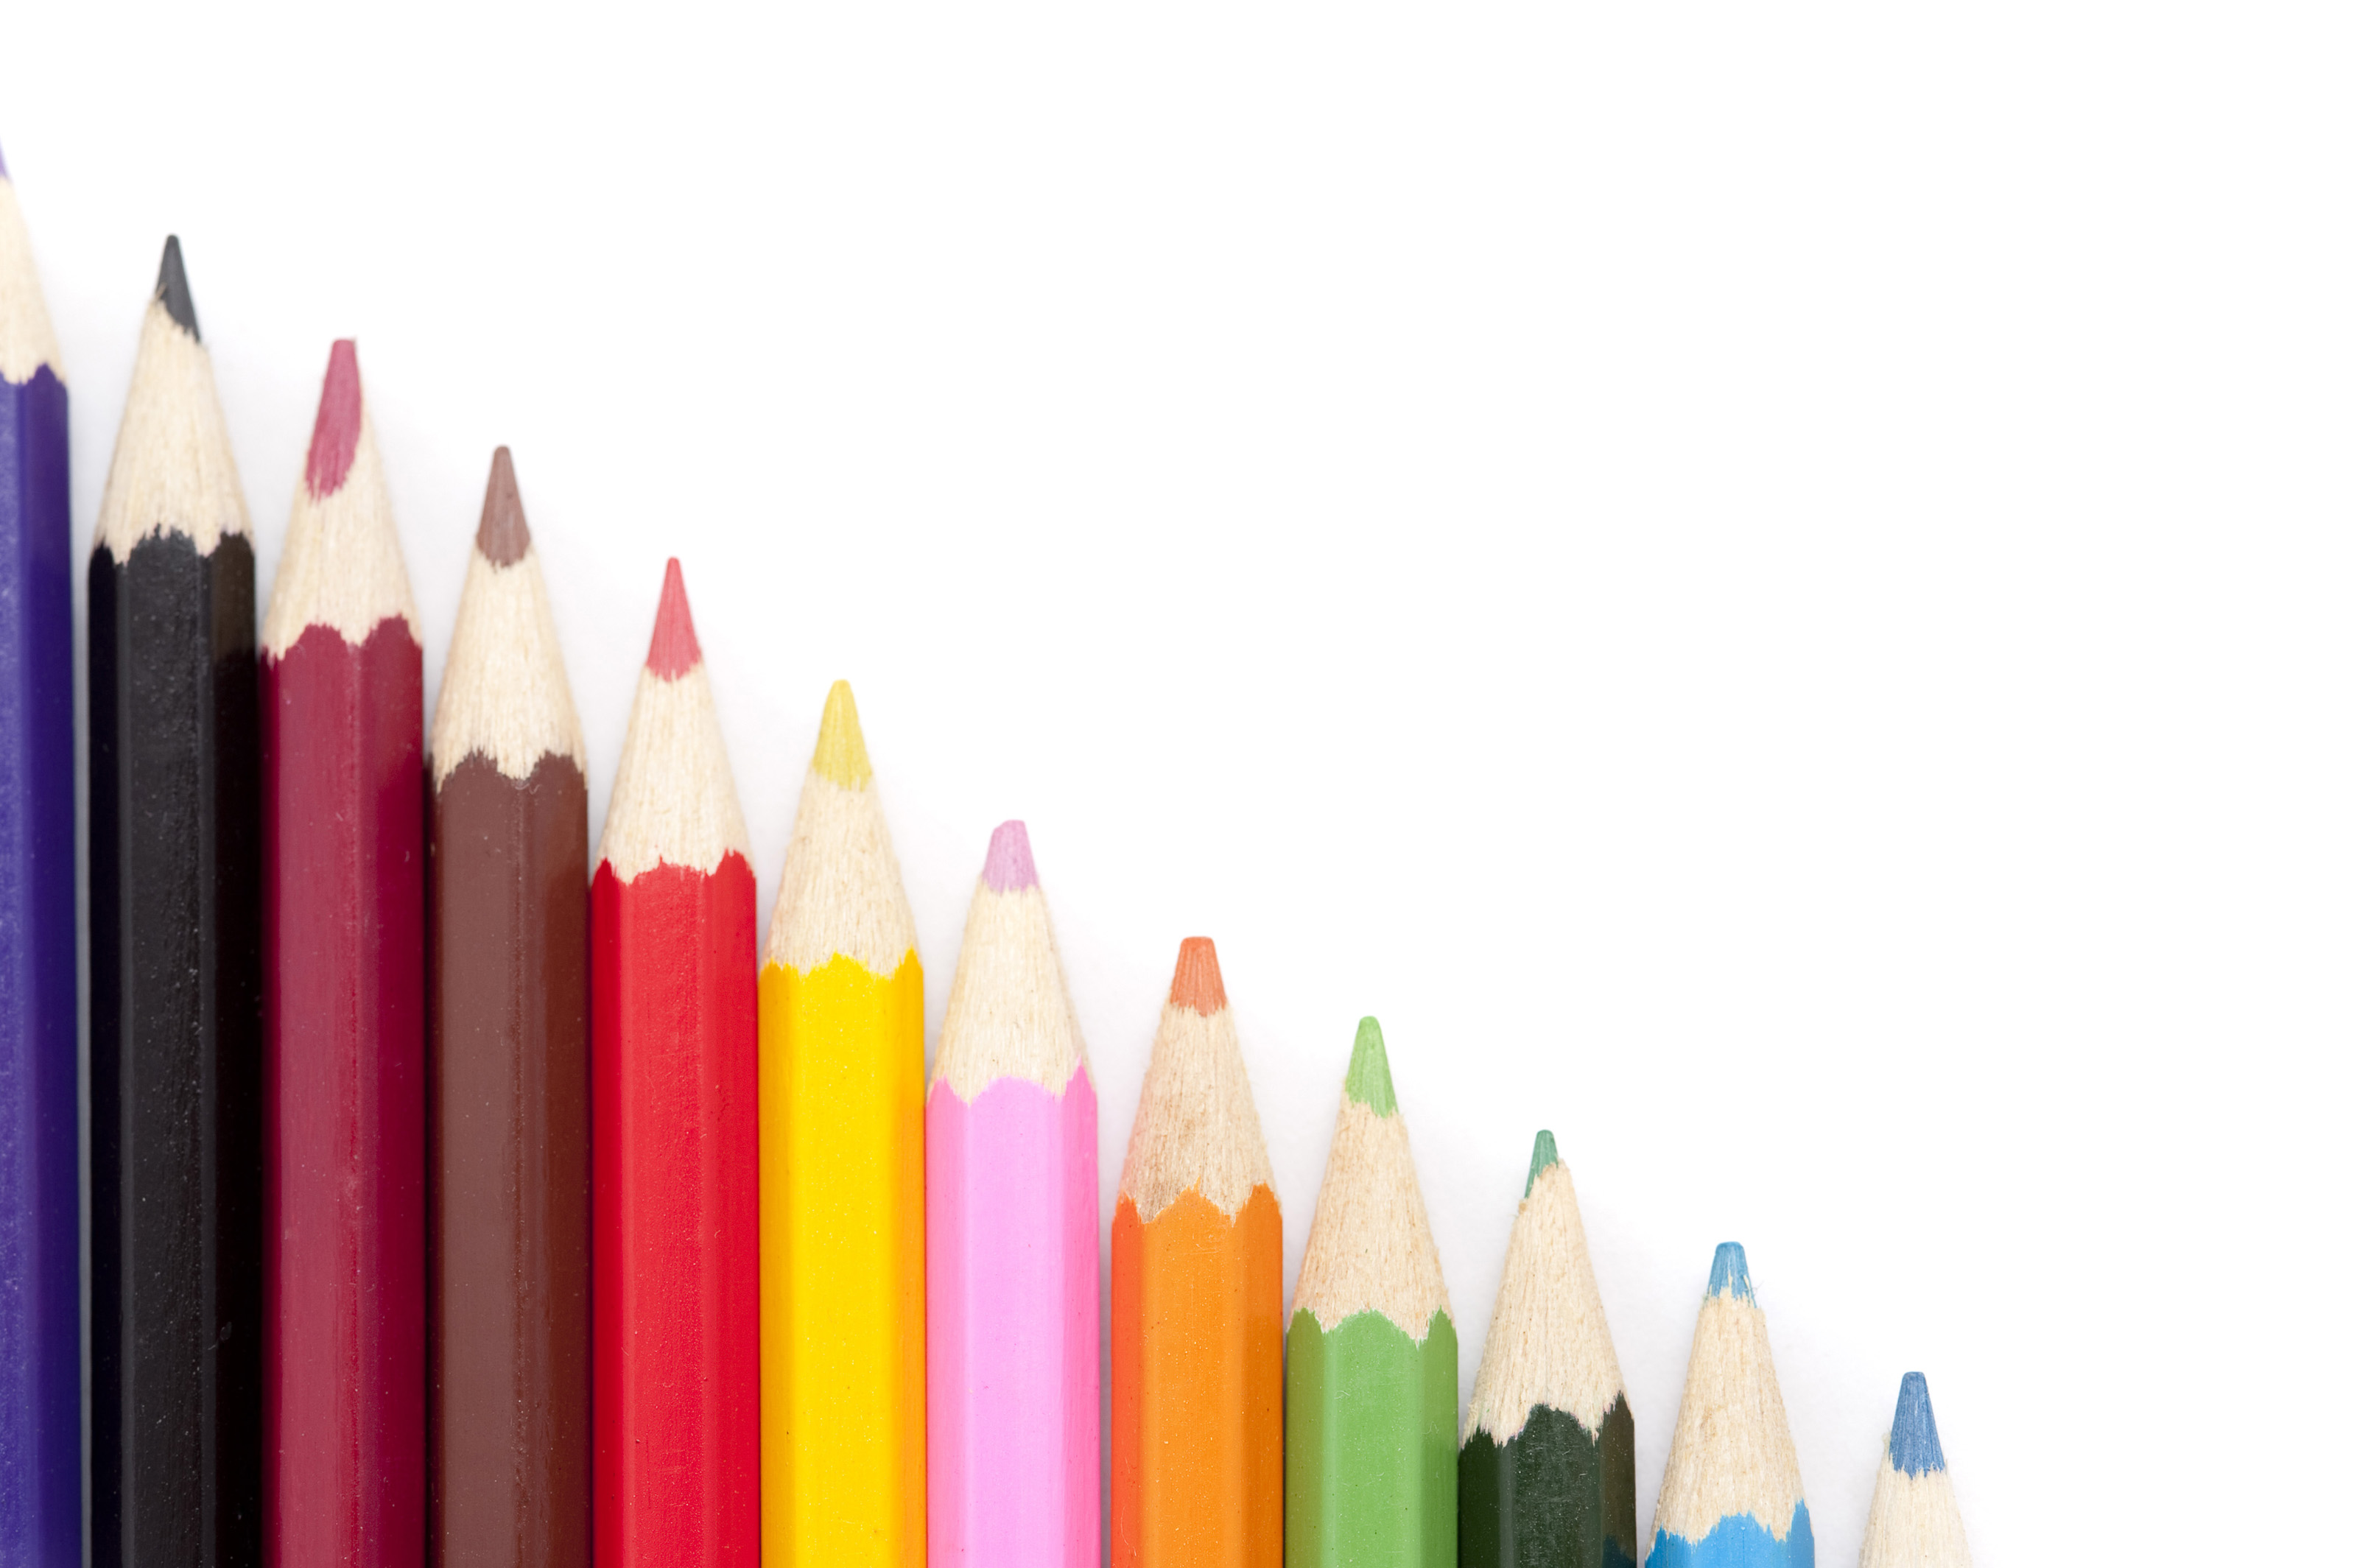 Cute Red Color Wallpaper Free Stock Photo 7015 Coloring Pencil Stairs Freeimageslive